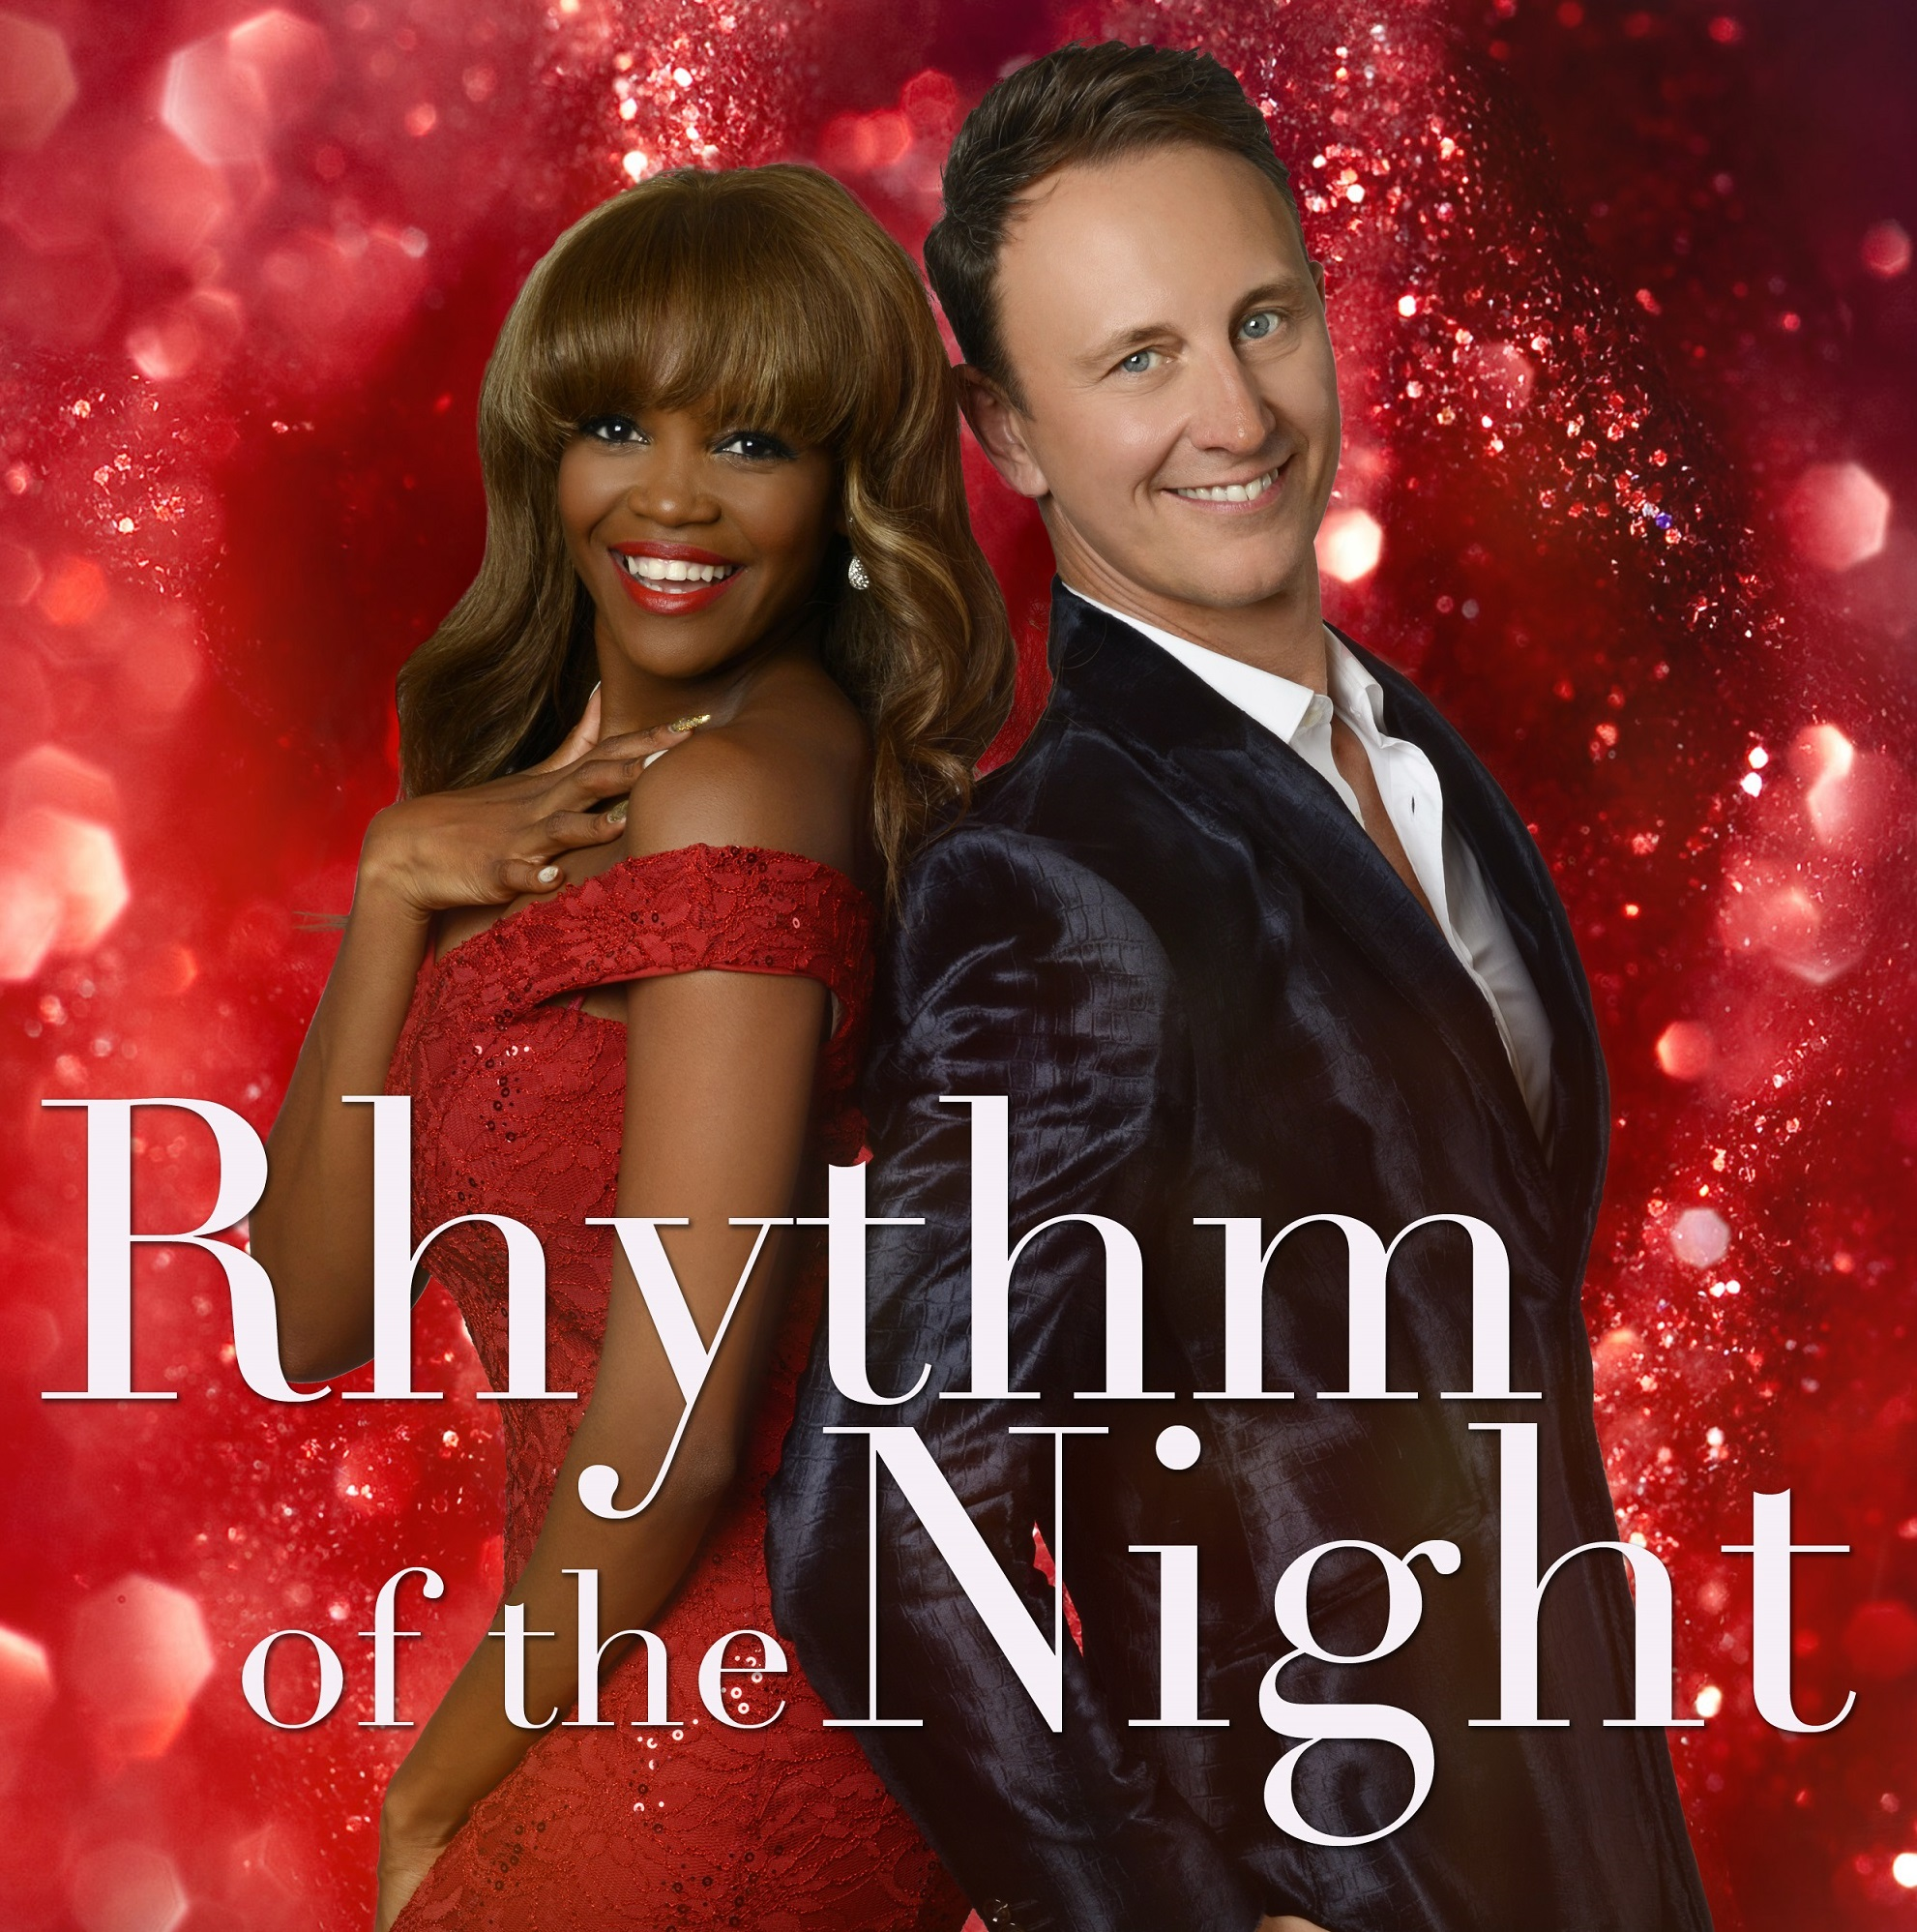 Rhythm Of The Night…Friday 25 May at 7.30pmTickets - £28, concessions - £26.50Bench seats - £26, concessions - £24.50Ian and Oti will deliver a night of Latin and Ballroom numbers with high intensity…The Strictly Come Dancing pros will perform a dance showcase spectacular designed to dazzle and wow you. Oti is fondly remembered with her celebrity pairing with Danny Mac where they received a perfect score of 40 in the Samba.  Ian is a regular on our screens with the spin off programme It Takes Two on BBC 2.Ian and Oti always push the boundaries of dance to bring the best out of their celebrity partner, with both of them becoming finalist in the Hit BBC show.On the night they will dance a mix of Latin and Ballroom, transporting you away to a place of wonderful moments with fun filled entertainment and a close up history of all things related to their life.In addition to the performance there are 30 higher-priced tickets for a meet and greet opportunity with Ian and Oti for photos and autographs pre show (6pm).Tickets for meet and greet are available for an extra £21 for photos and autographs – this but must be bought in conjunction with a show ticket.Customers will receive a programme which they can get personally signed, it's a great opportunity to take photos and chat to Ian and Oti .